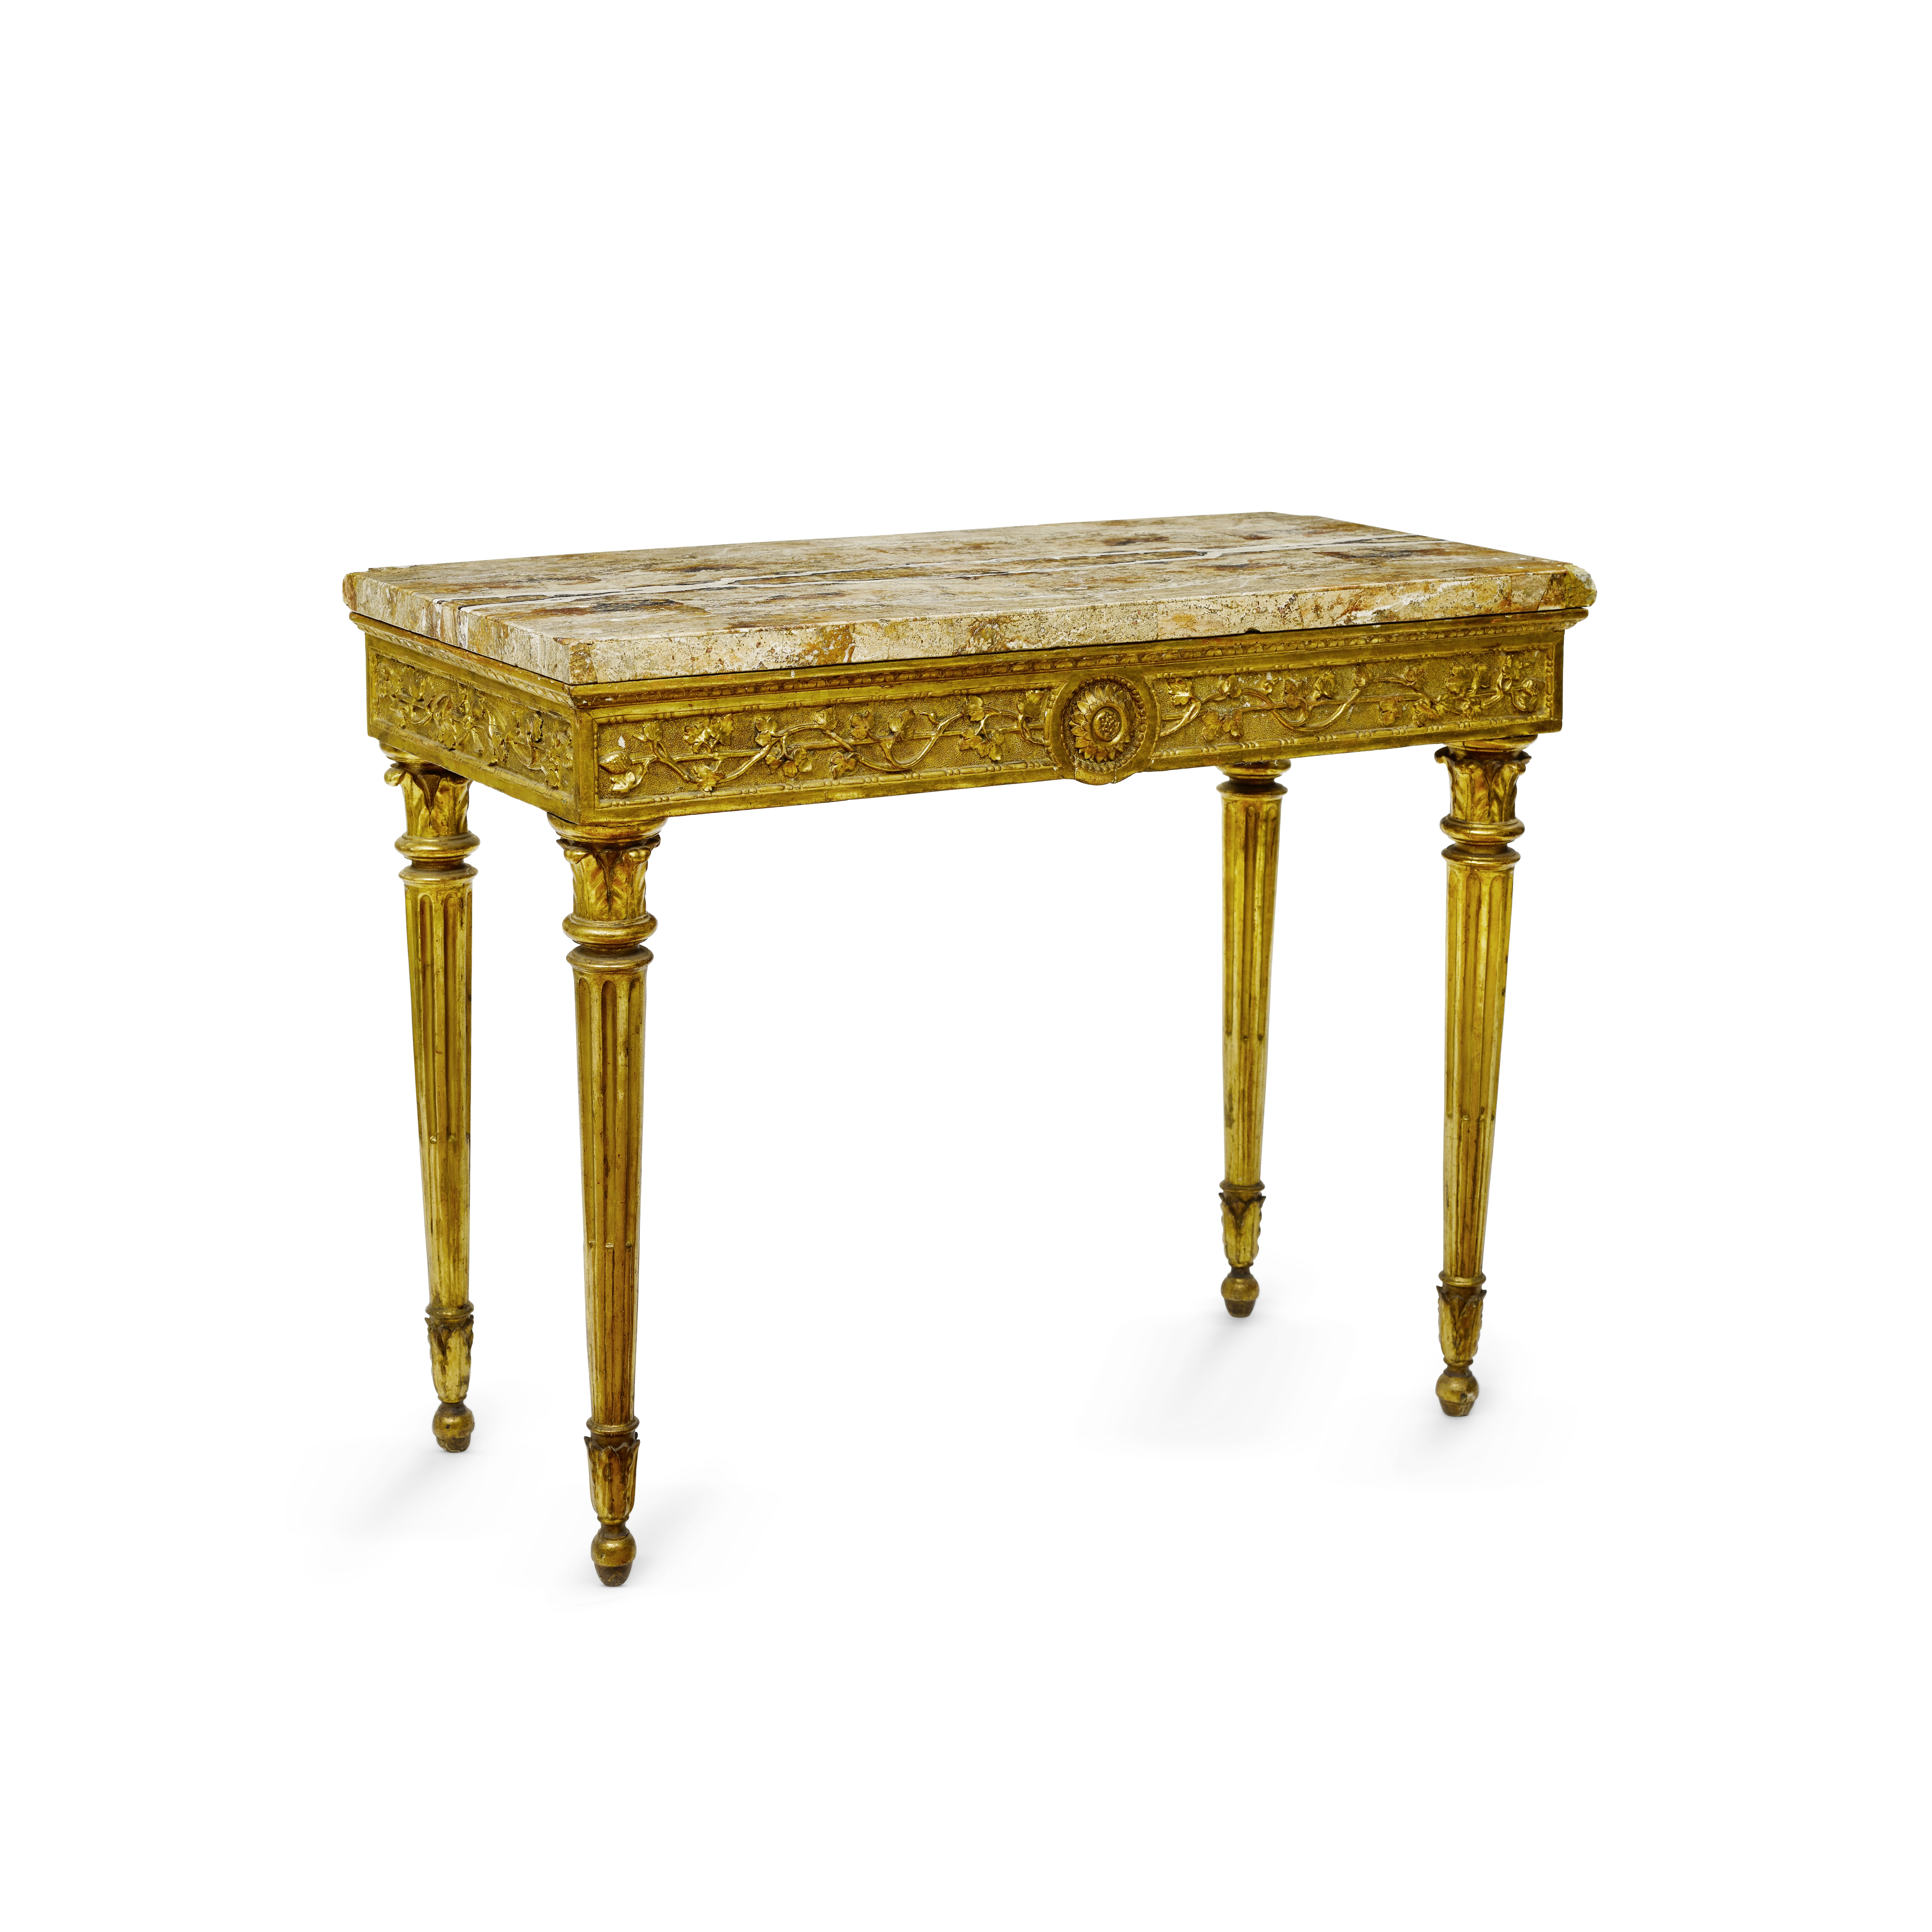 Lot 201 - An Italian Neoclassical Marble Top Giltwood Console Late 18th century